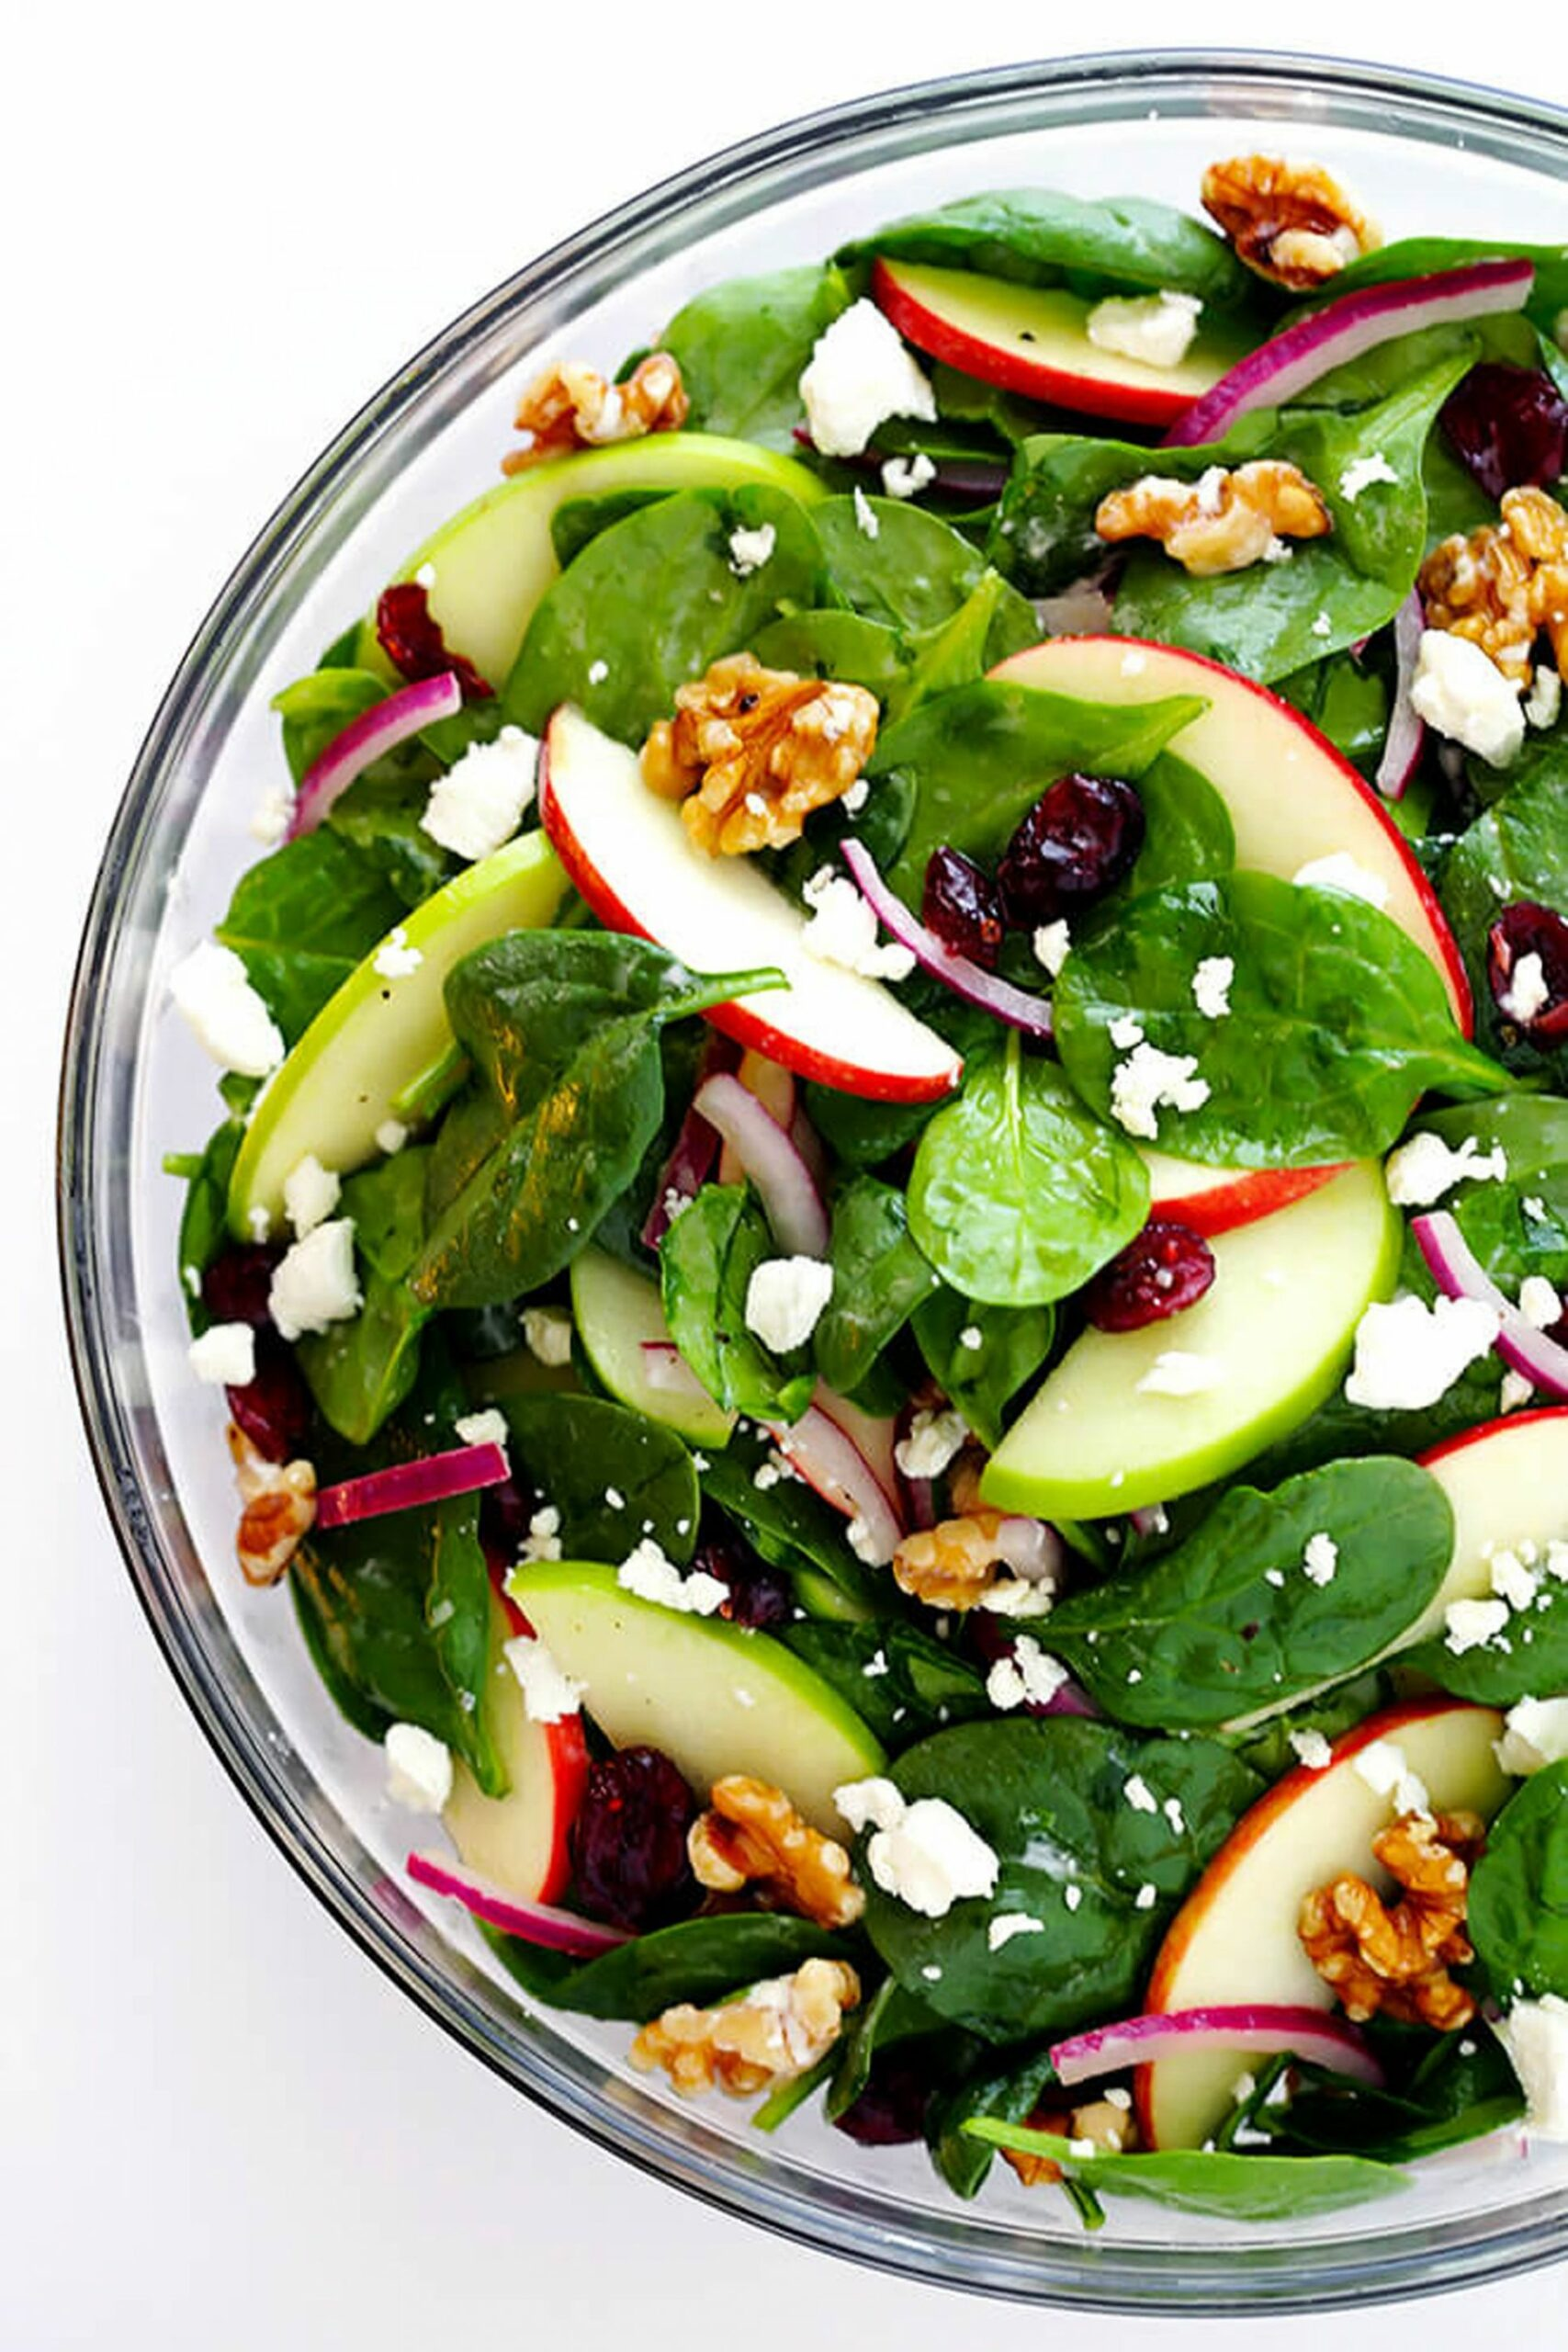 8 Best Apple Salad Recipes - Easy Fall Salads with Apples